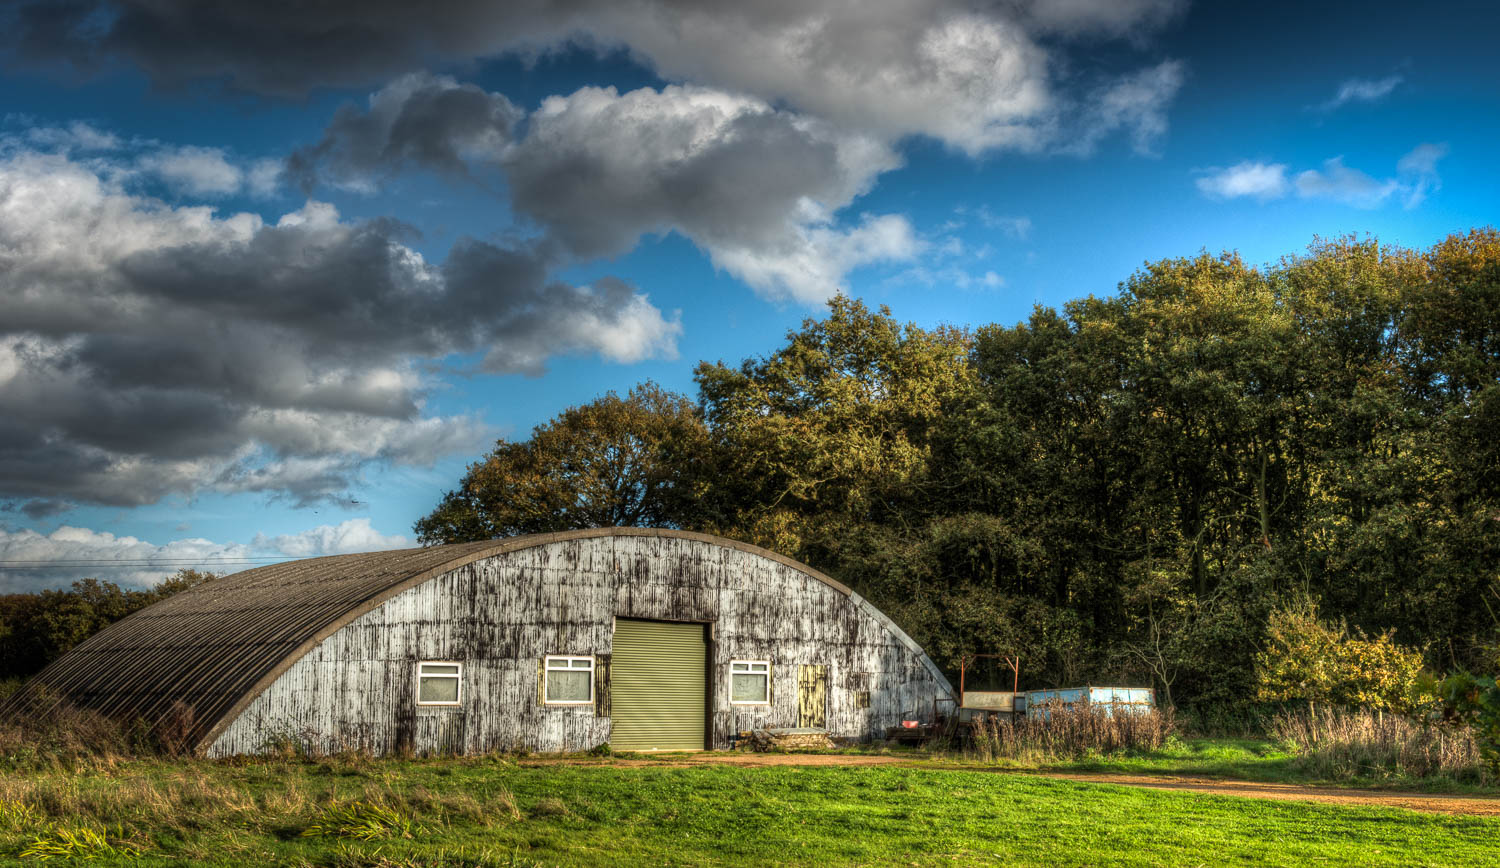 Nissen Hut at Rowney Wood